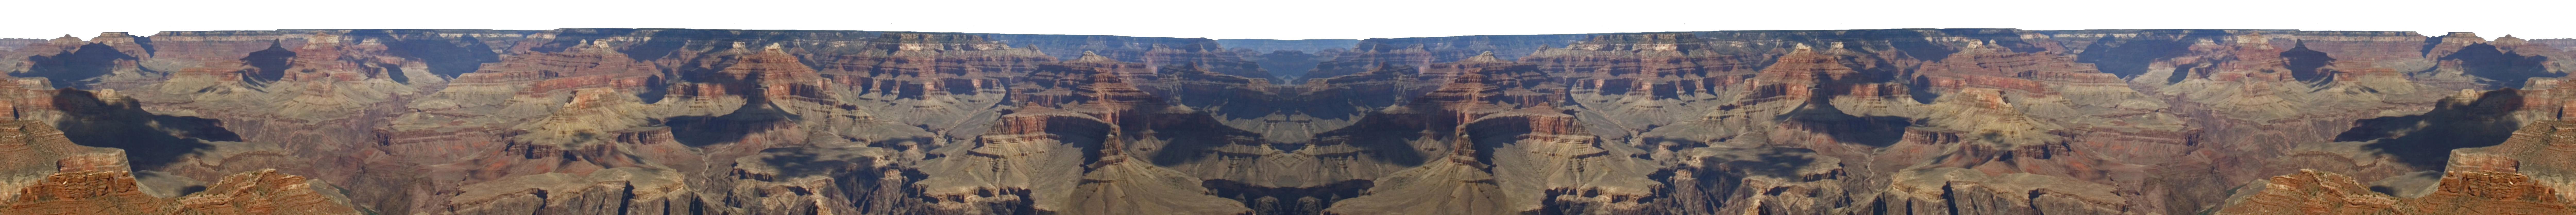 Picture of Grand Canyon Pano - click to view original size